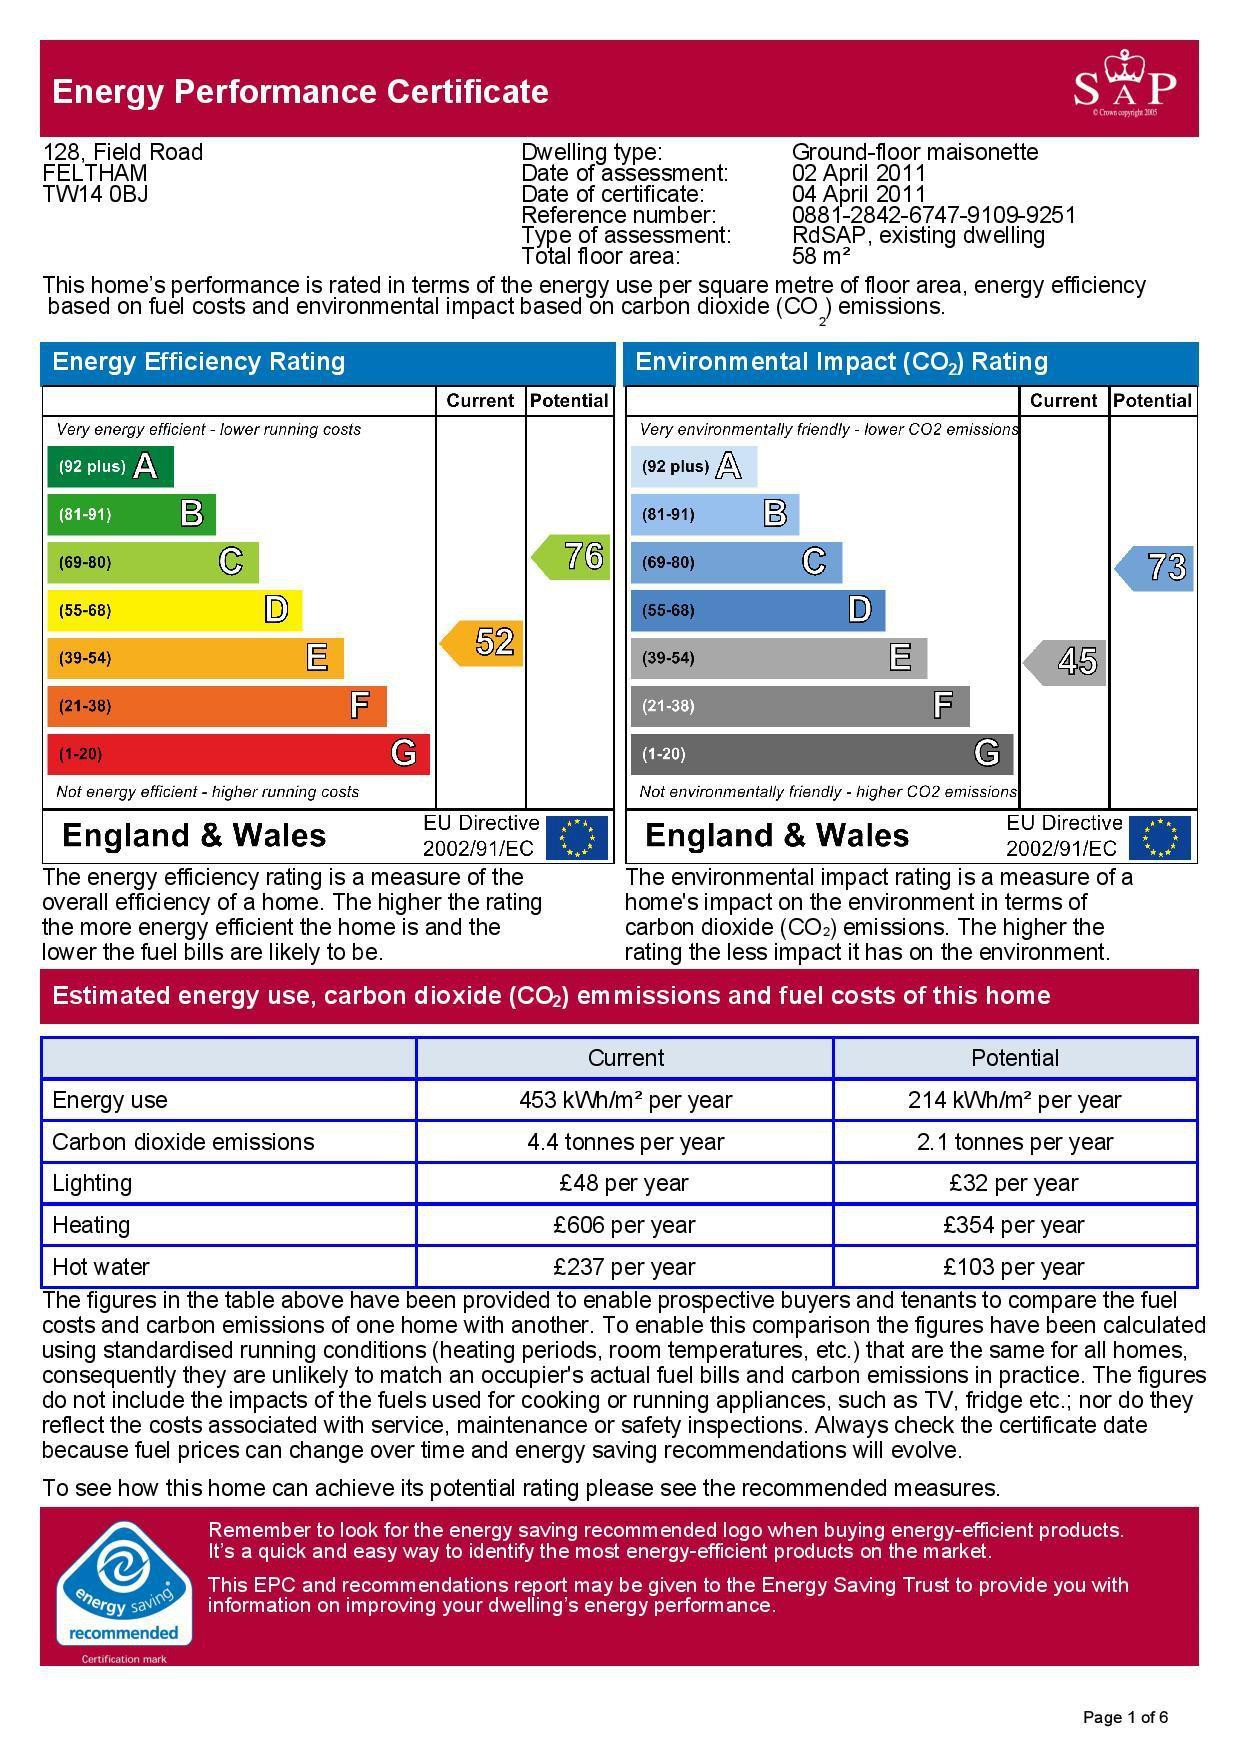 EPC Graph for 128 Field Road, Feltham, Middlesex TW14 0BJ